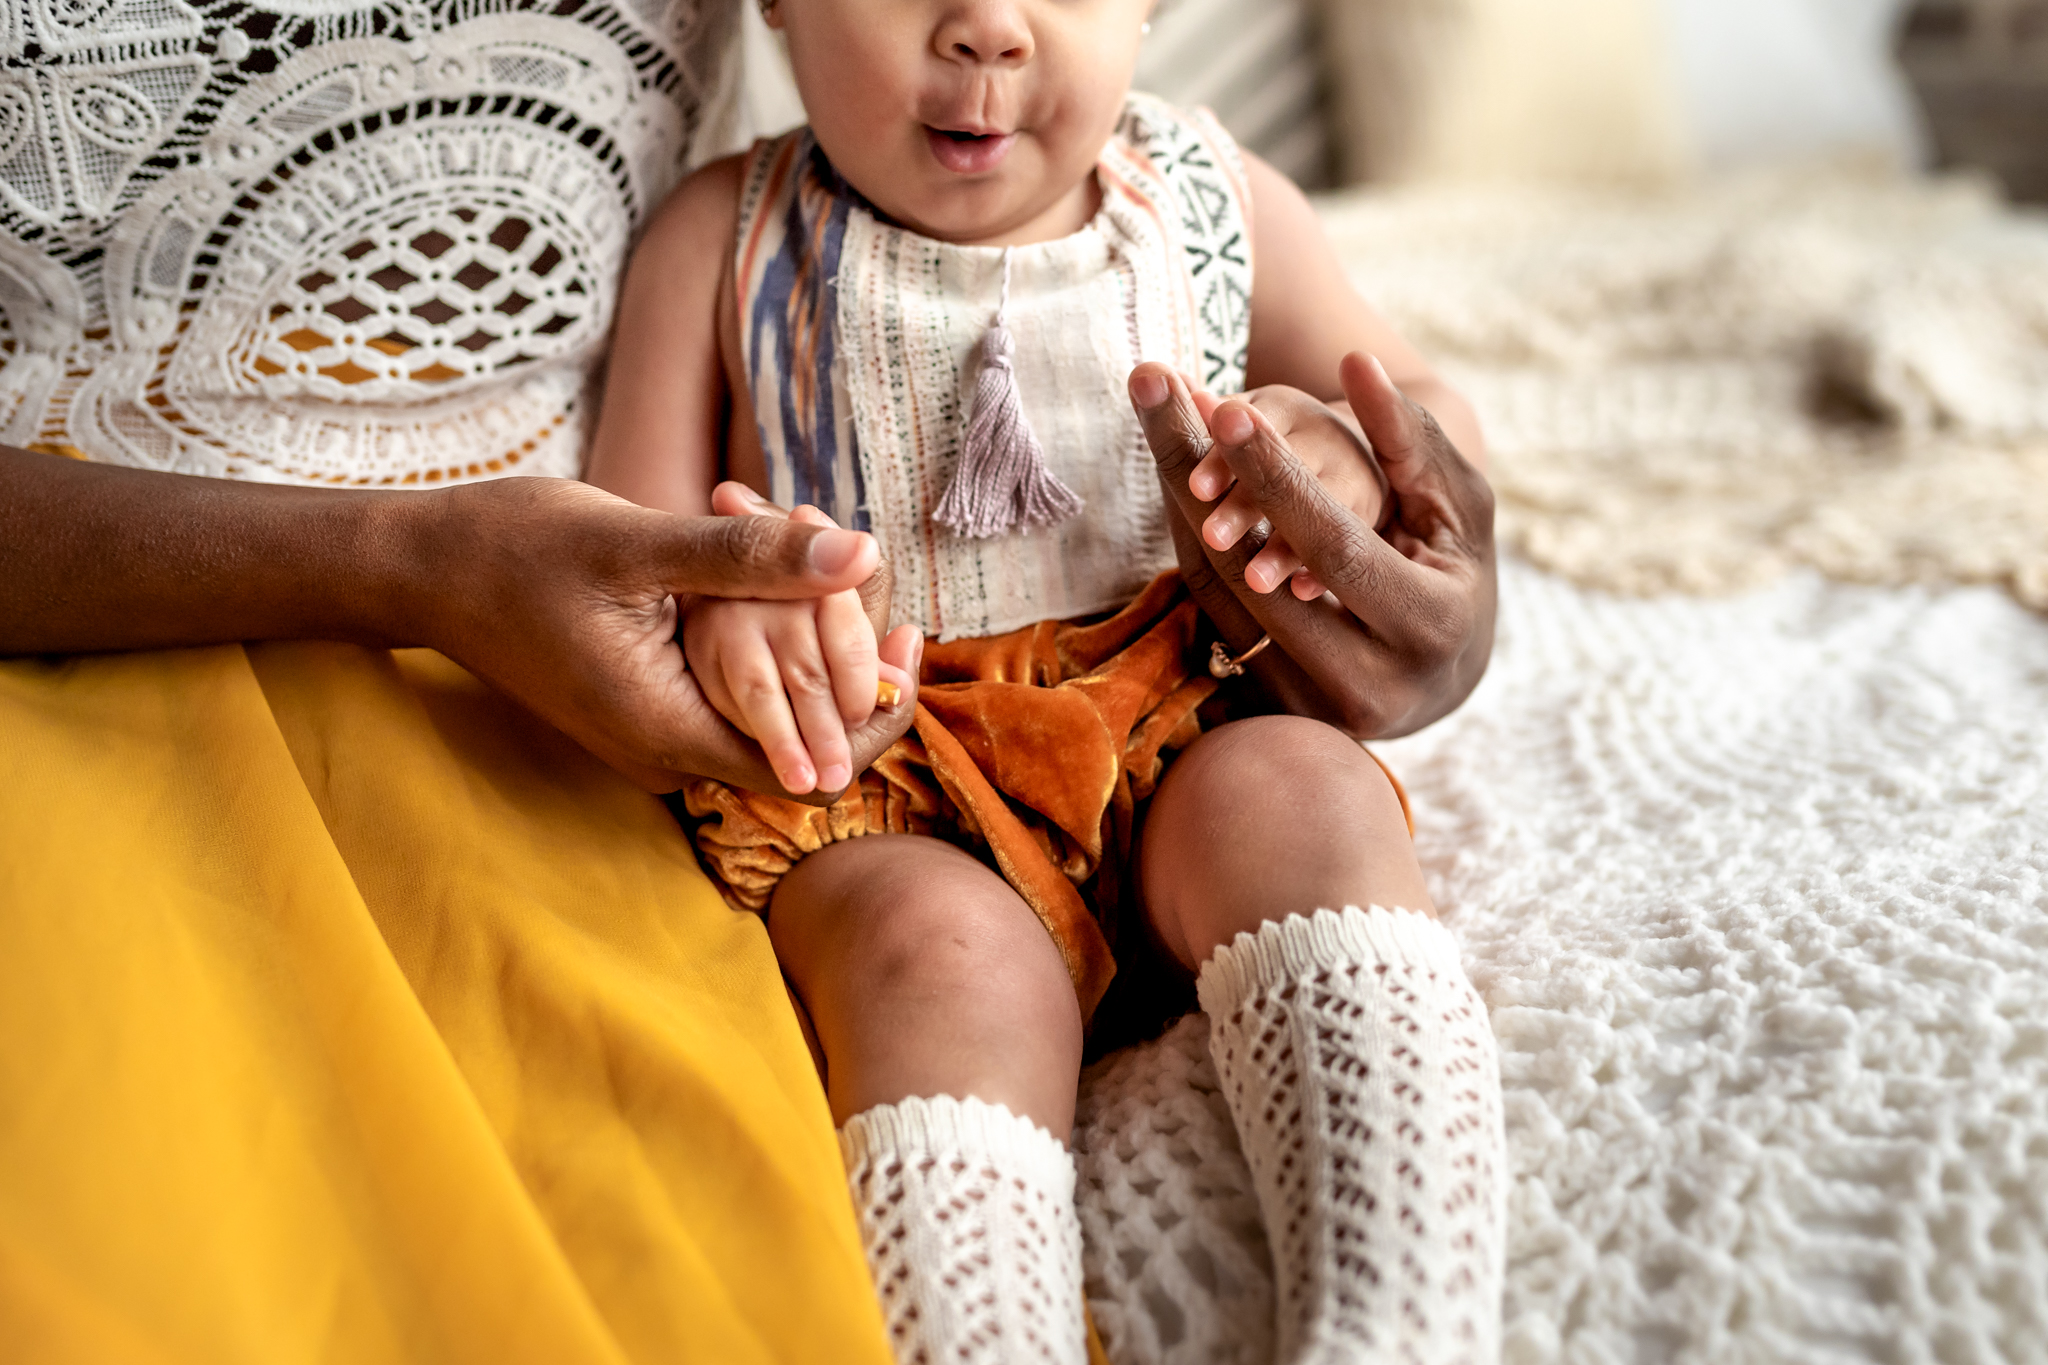 Beautiful Mommy and Me session with mom and her baby girl in a Houston, TX natural light, boho studio with a brick wall, textures accents, peacock chair, and neutral details. Sweet smiles and holding hands make for a sweet moment between mom and baby.